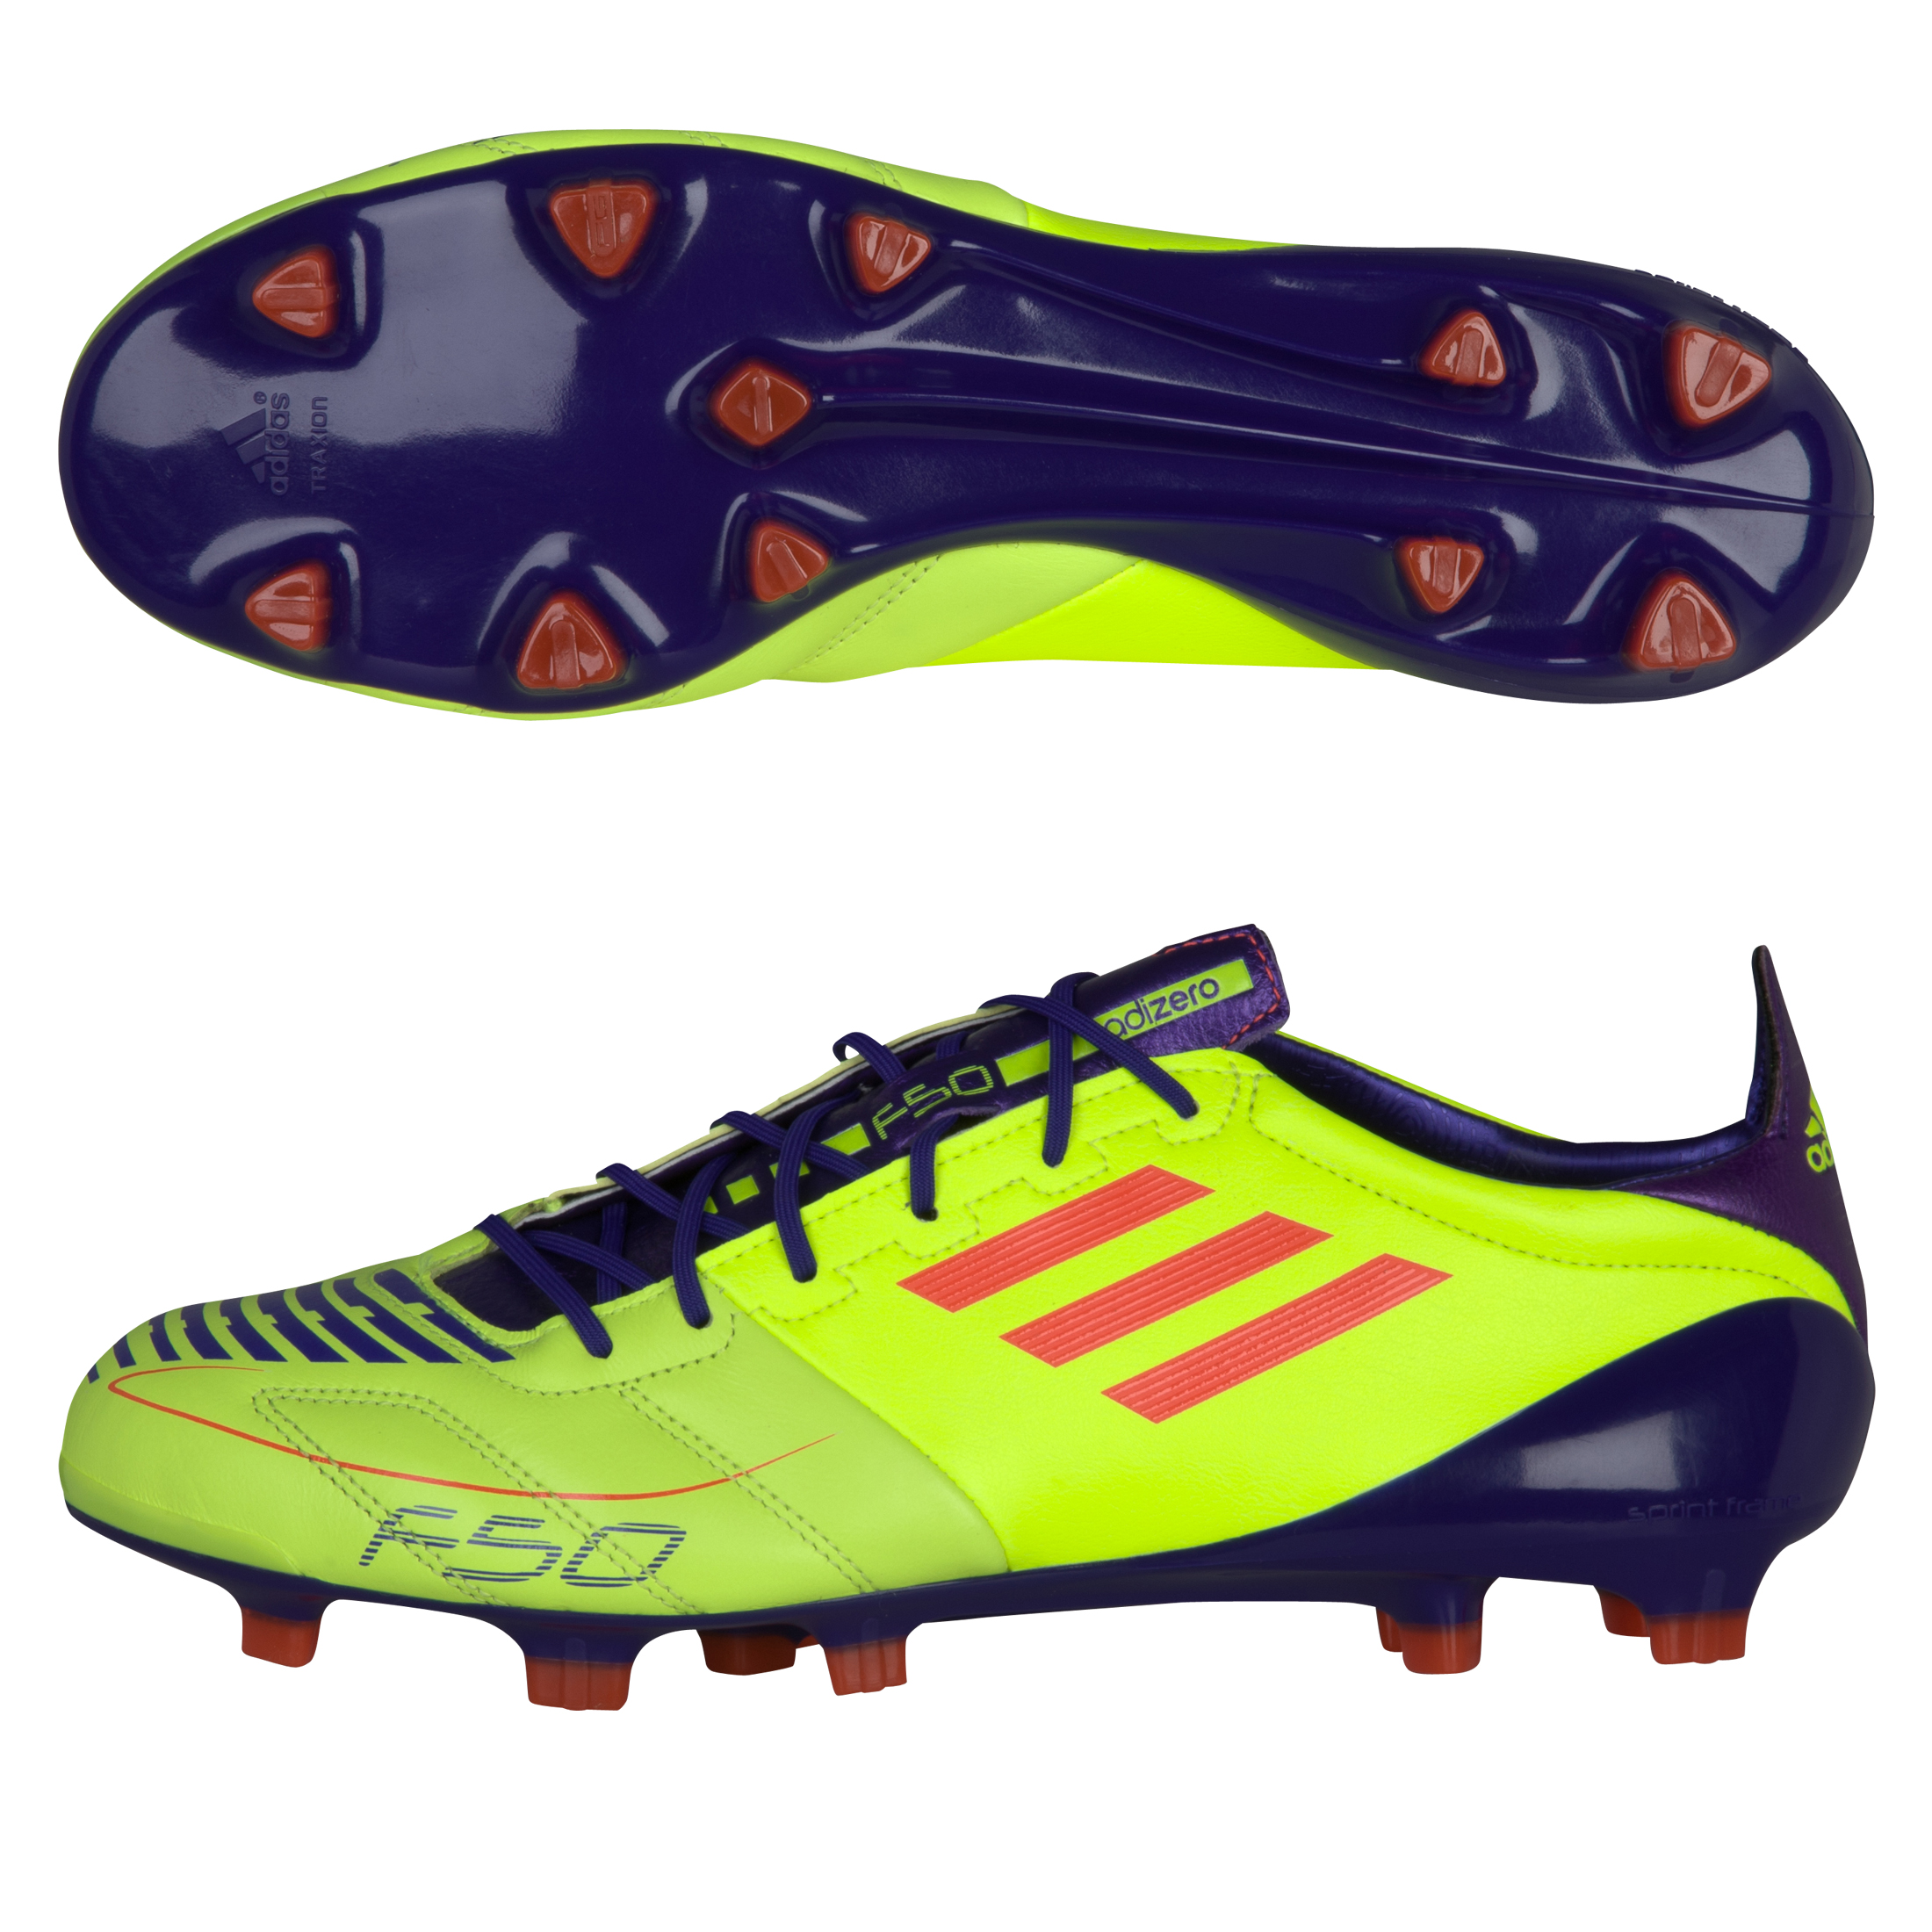 F50 adizero TRX FG Leather Electricity / Infrared / Anodized Purple